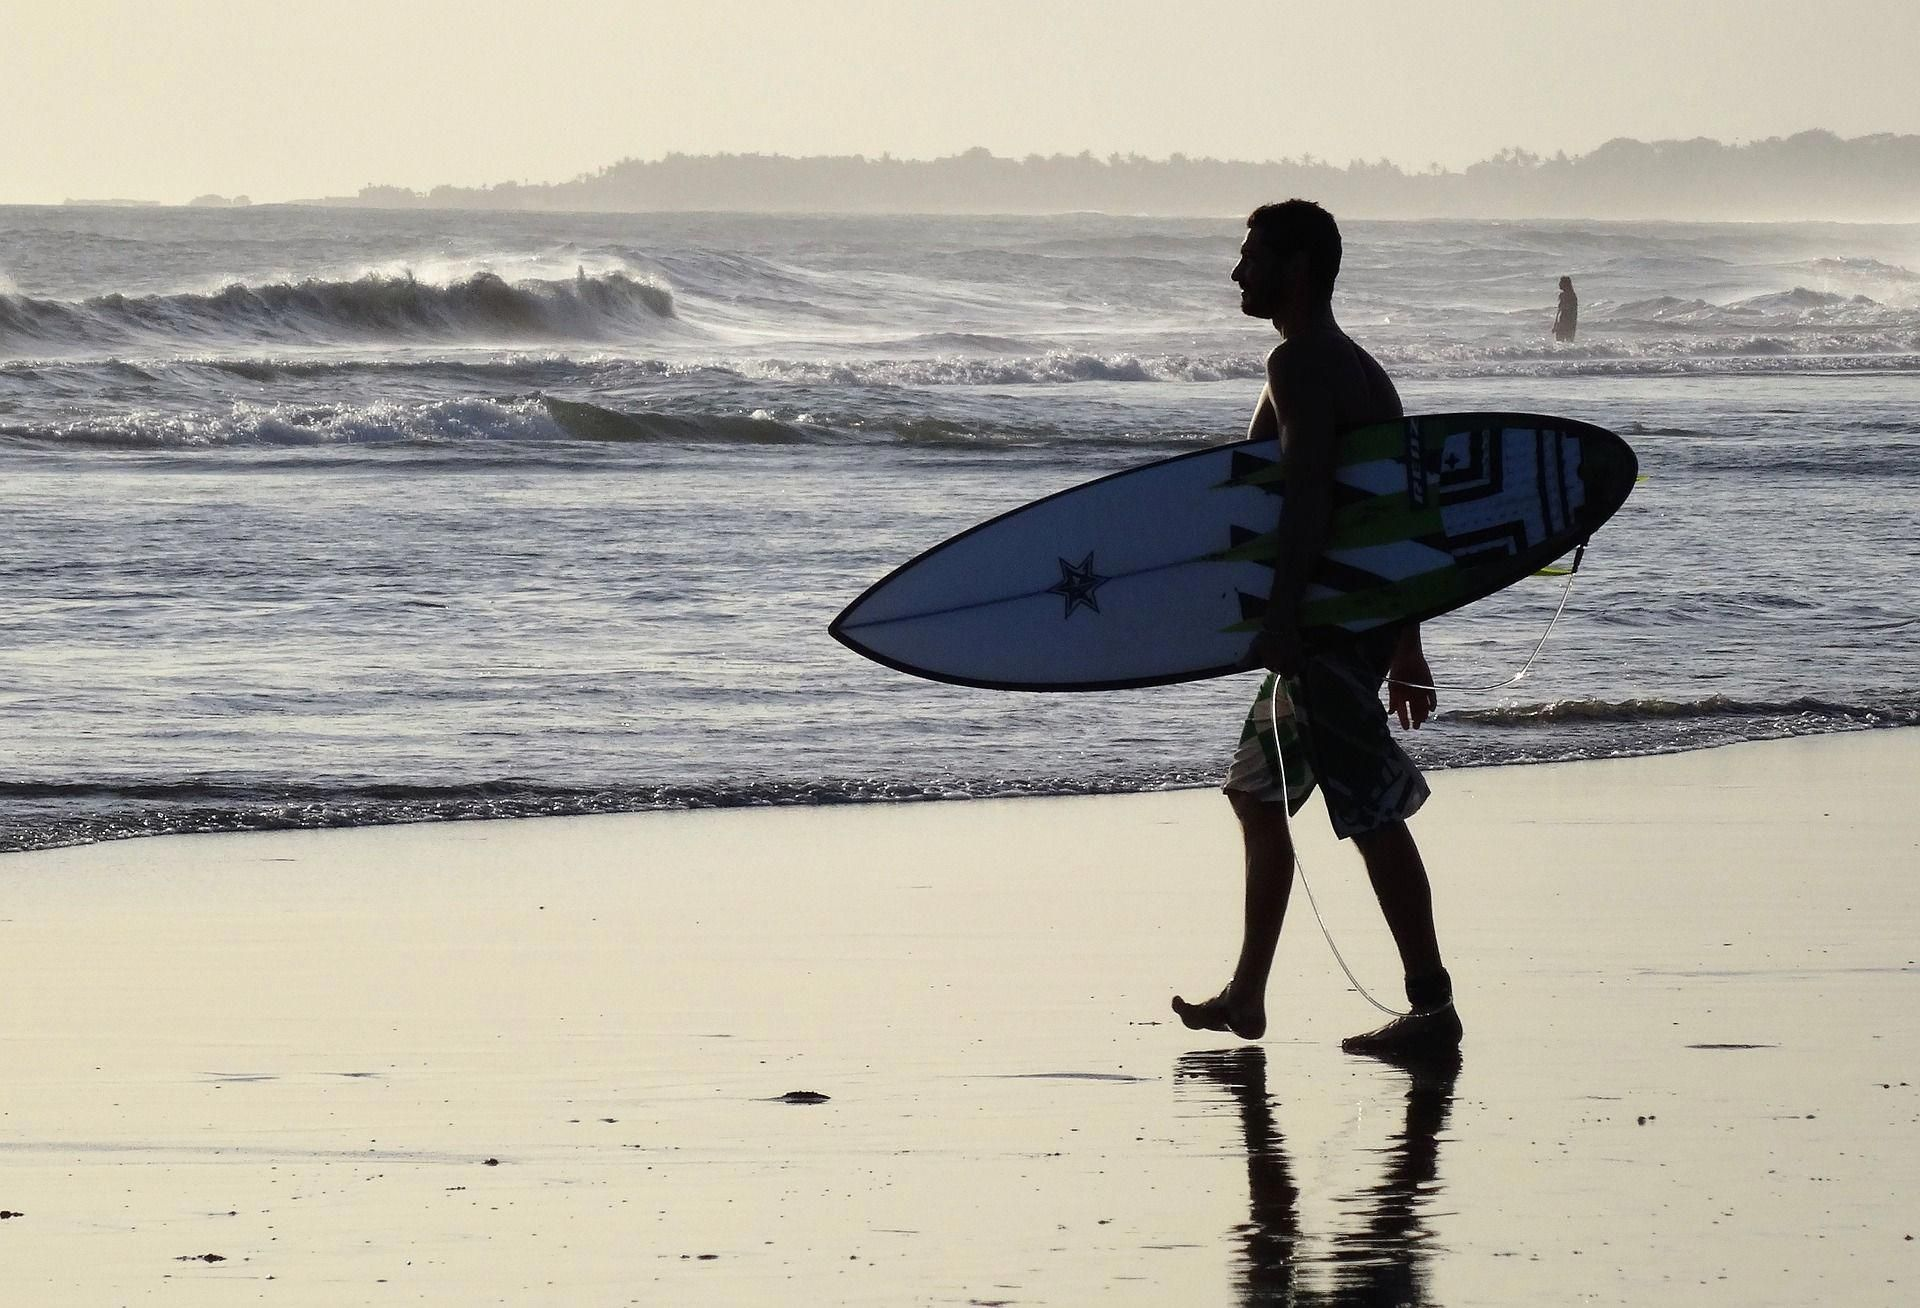 Sumba surf: all you need to know about surfing in sumba | asia.